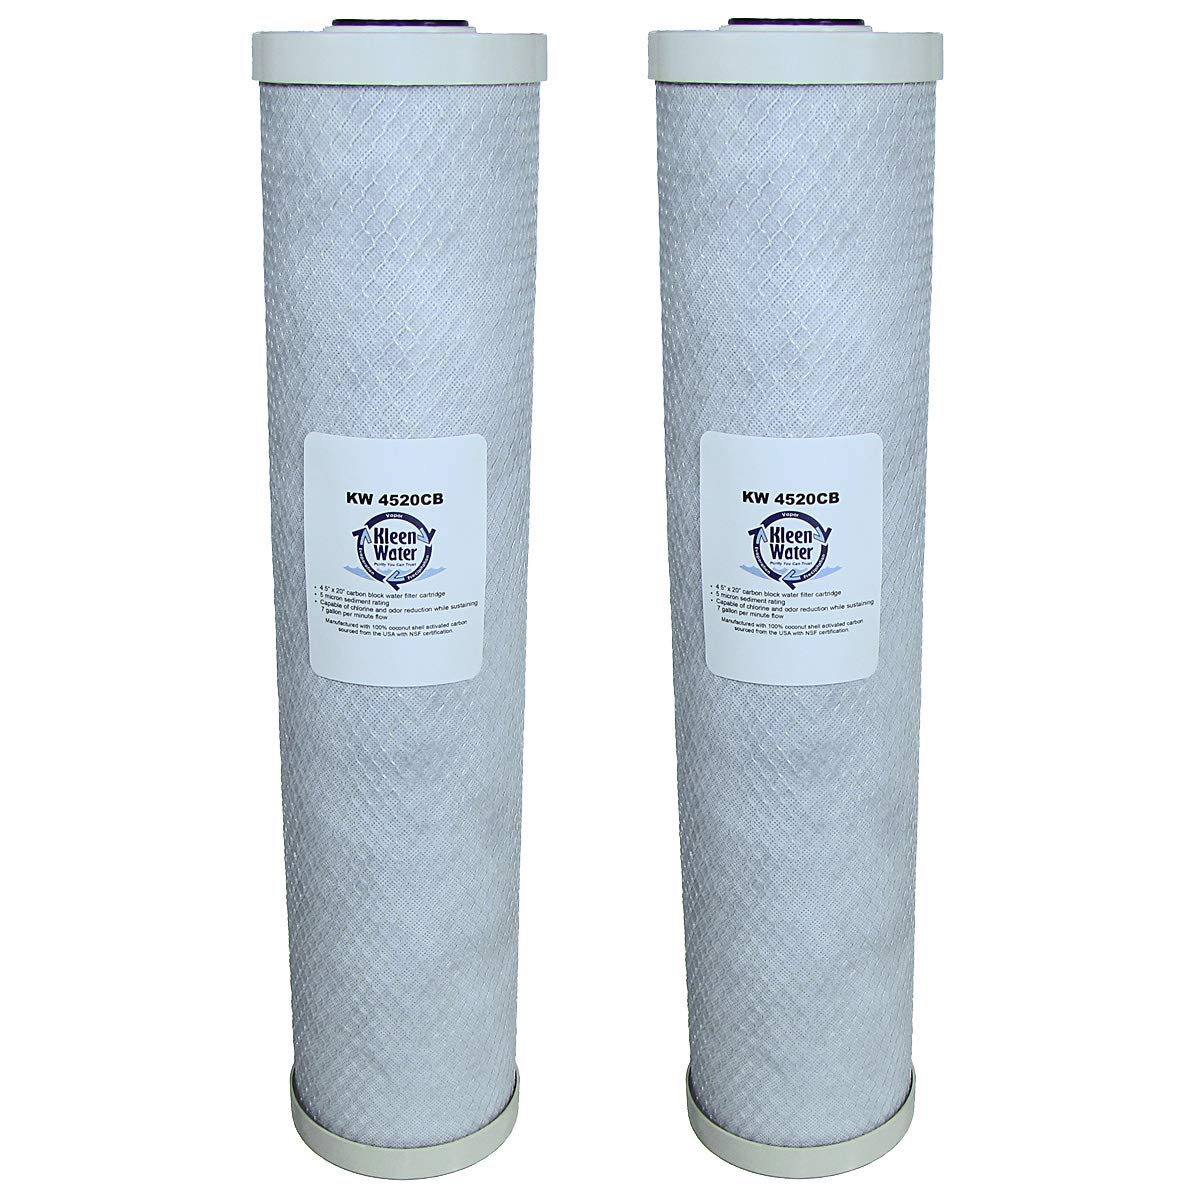 KleenWater Activated Carbon Block Water Filters 2 4.5 x 20 Inch Brand Replacement Cartridges